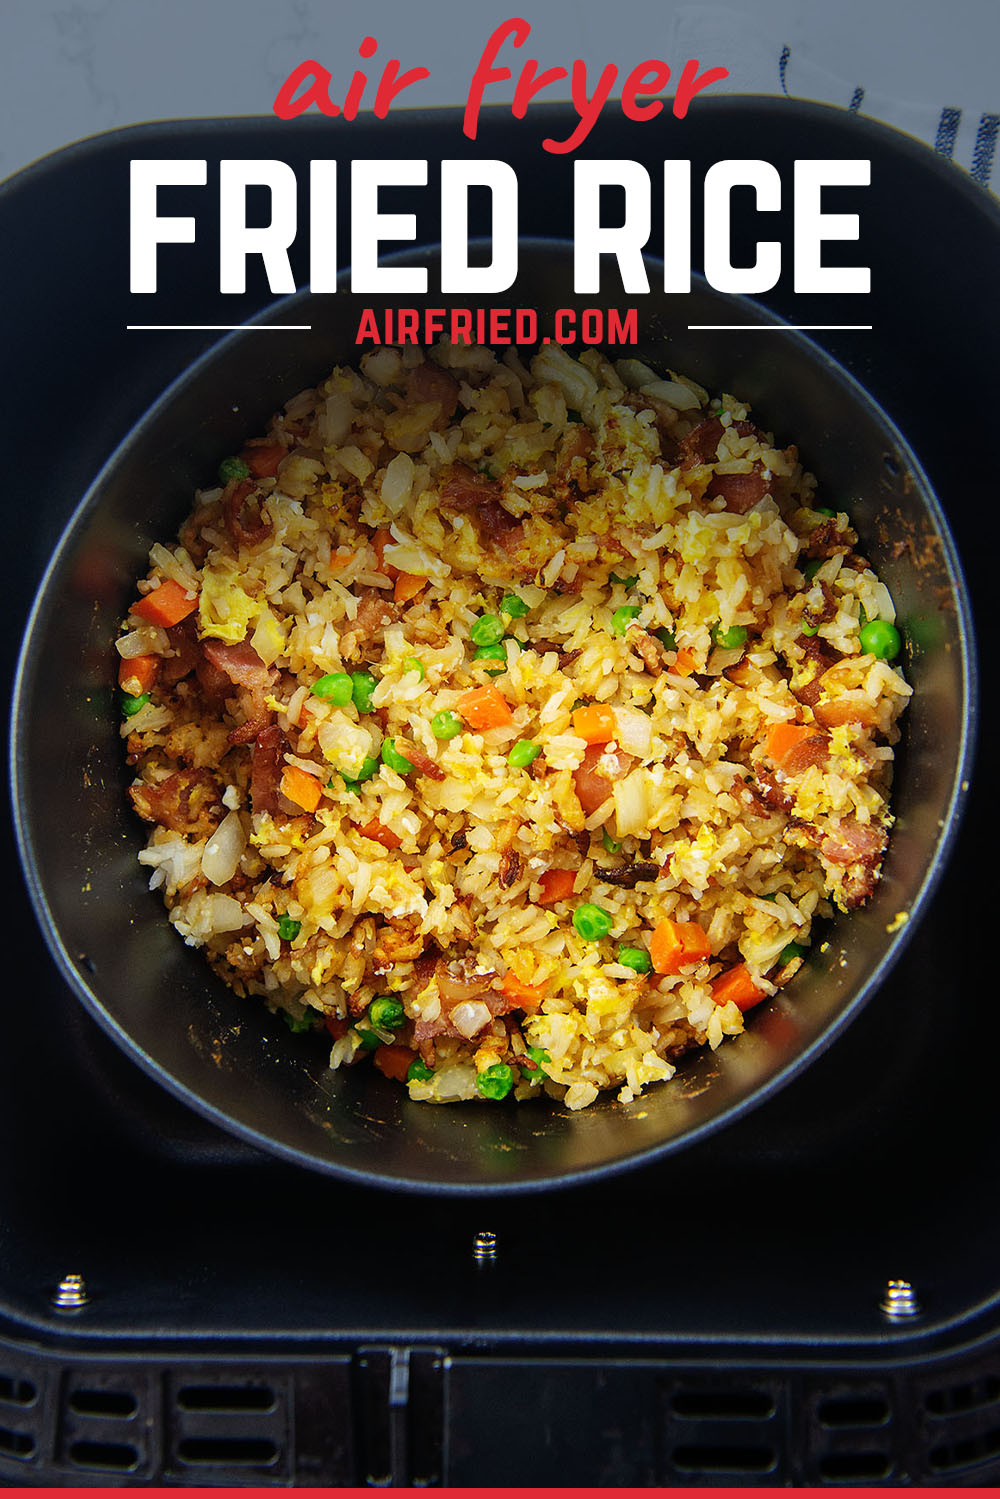 We had so much fun making our fried rice in the air fryer.  Just tossing in the ingredients and experimenting with it a bit, was very satisfying!